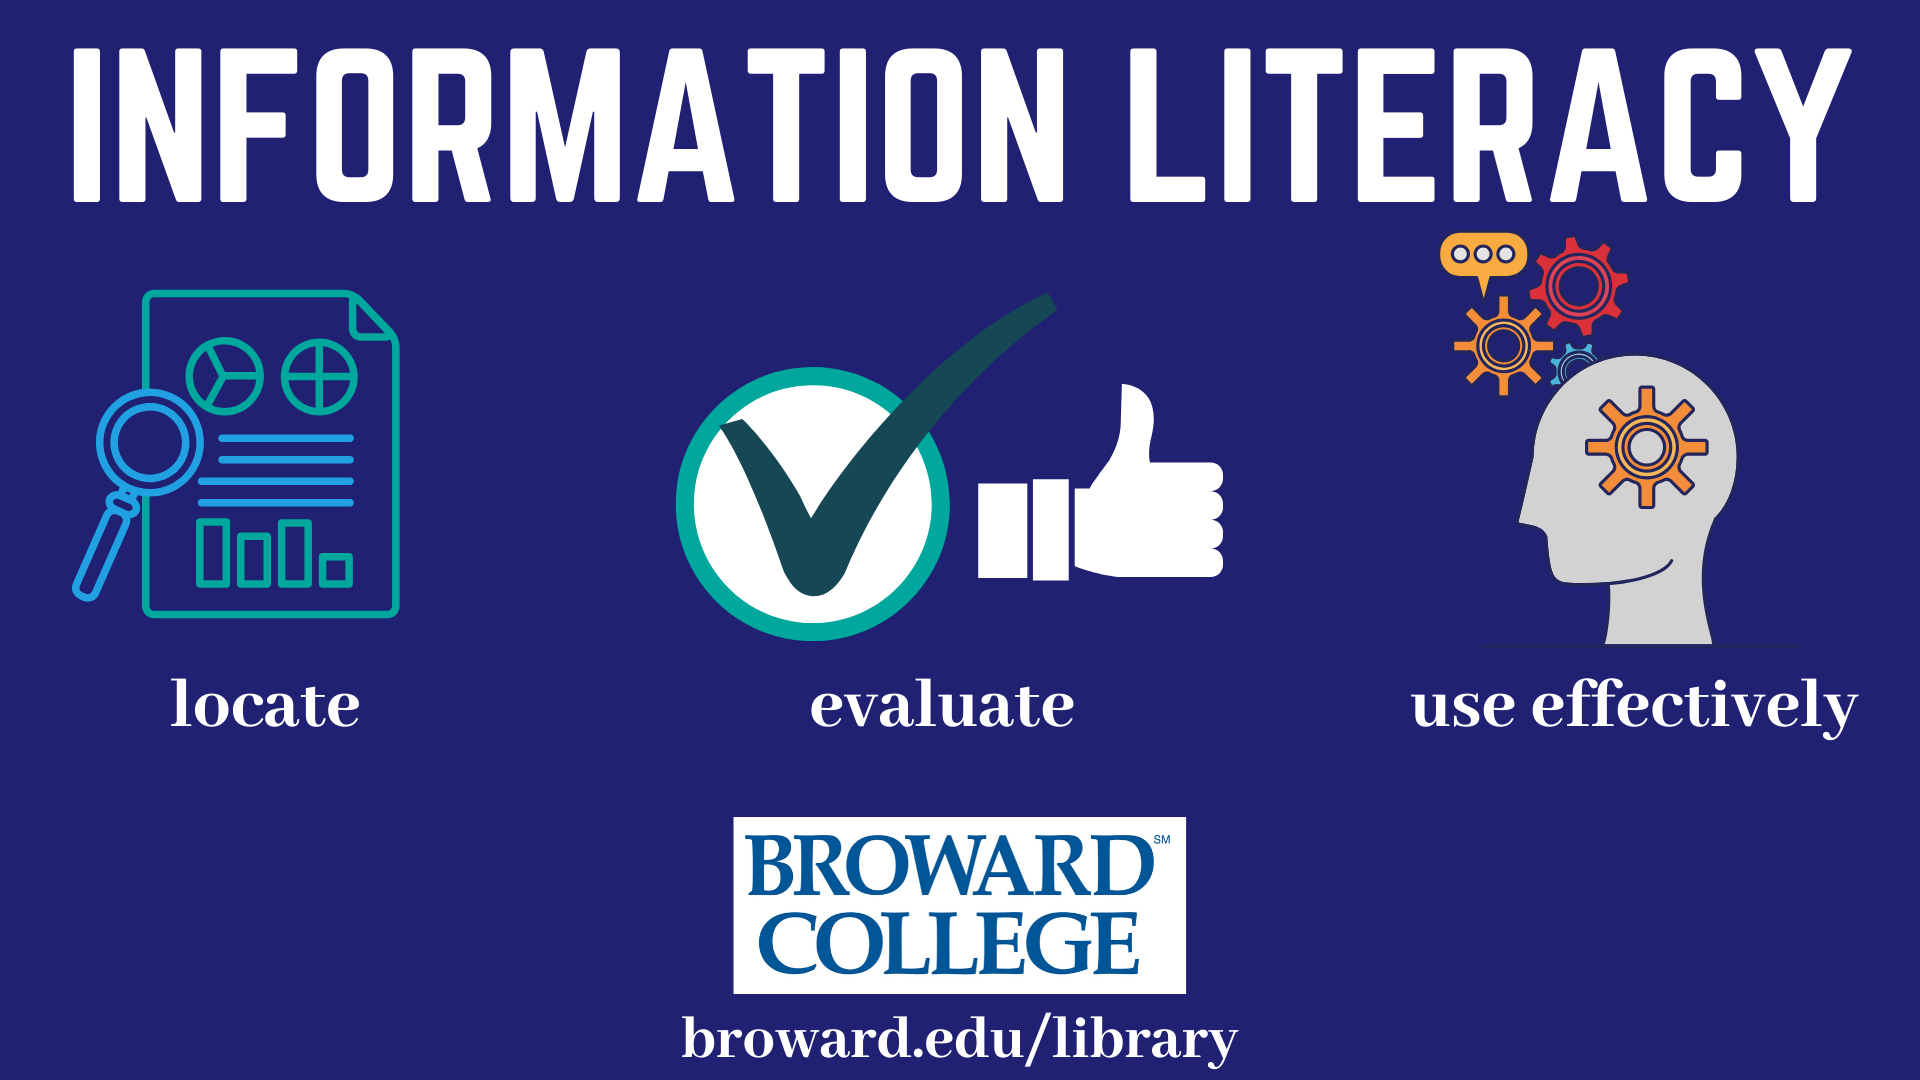 Information literacy - locate, evaluate, use effectively